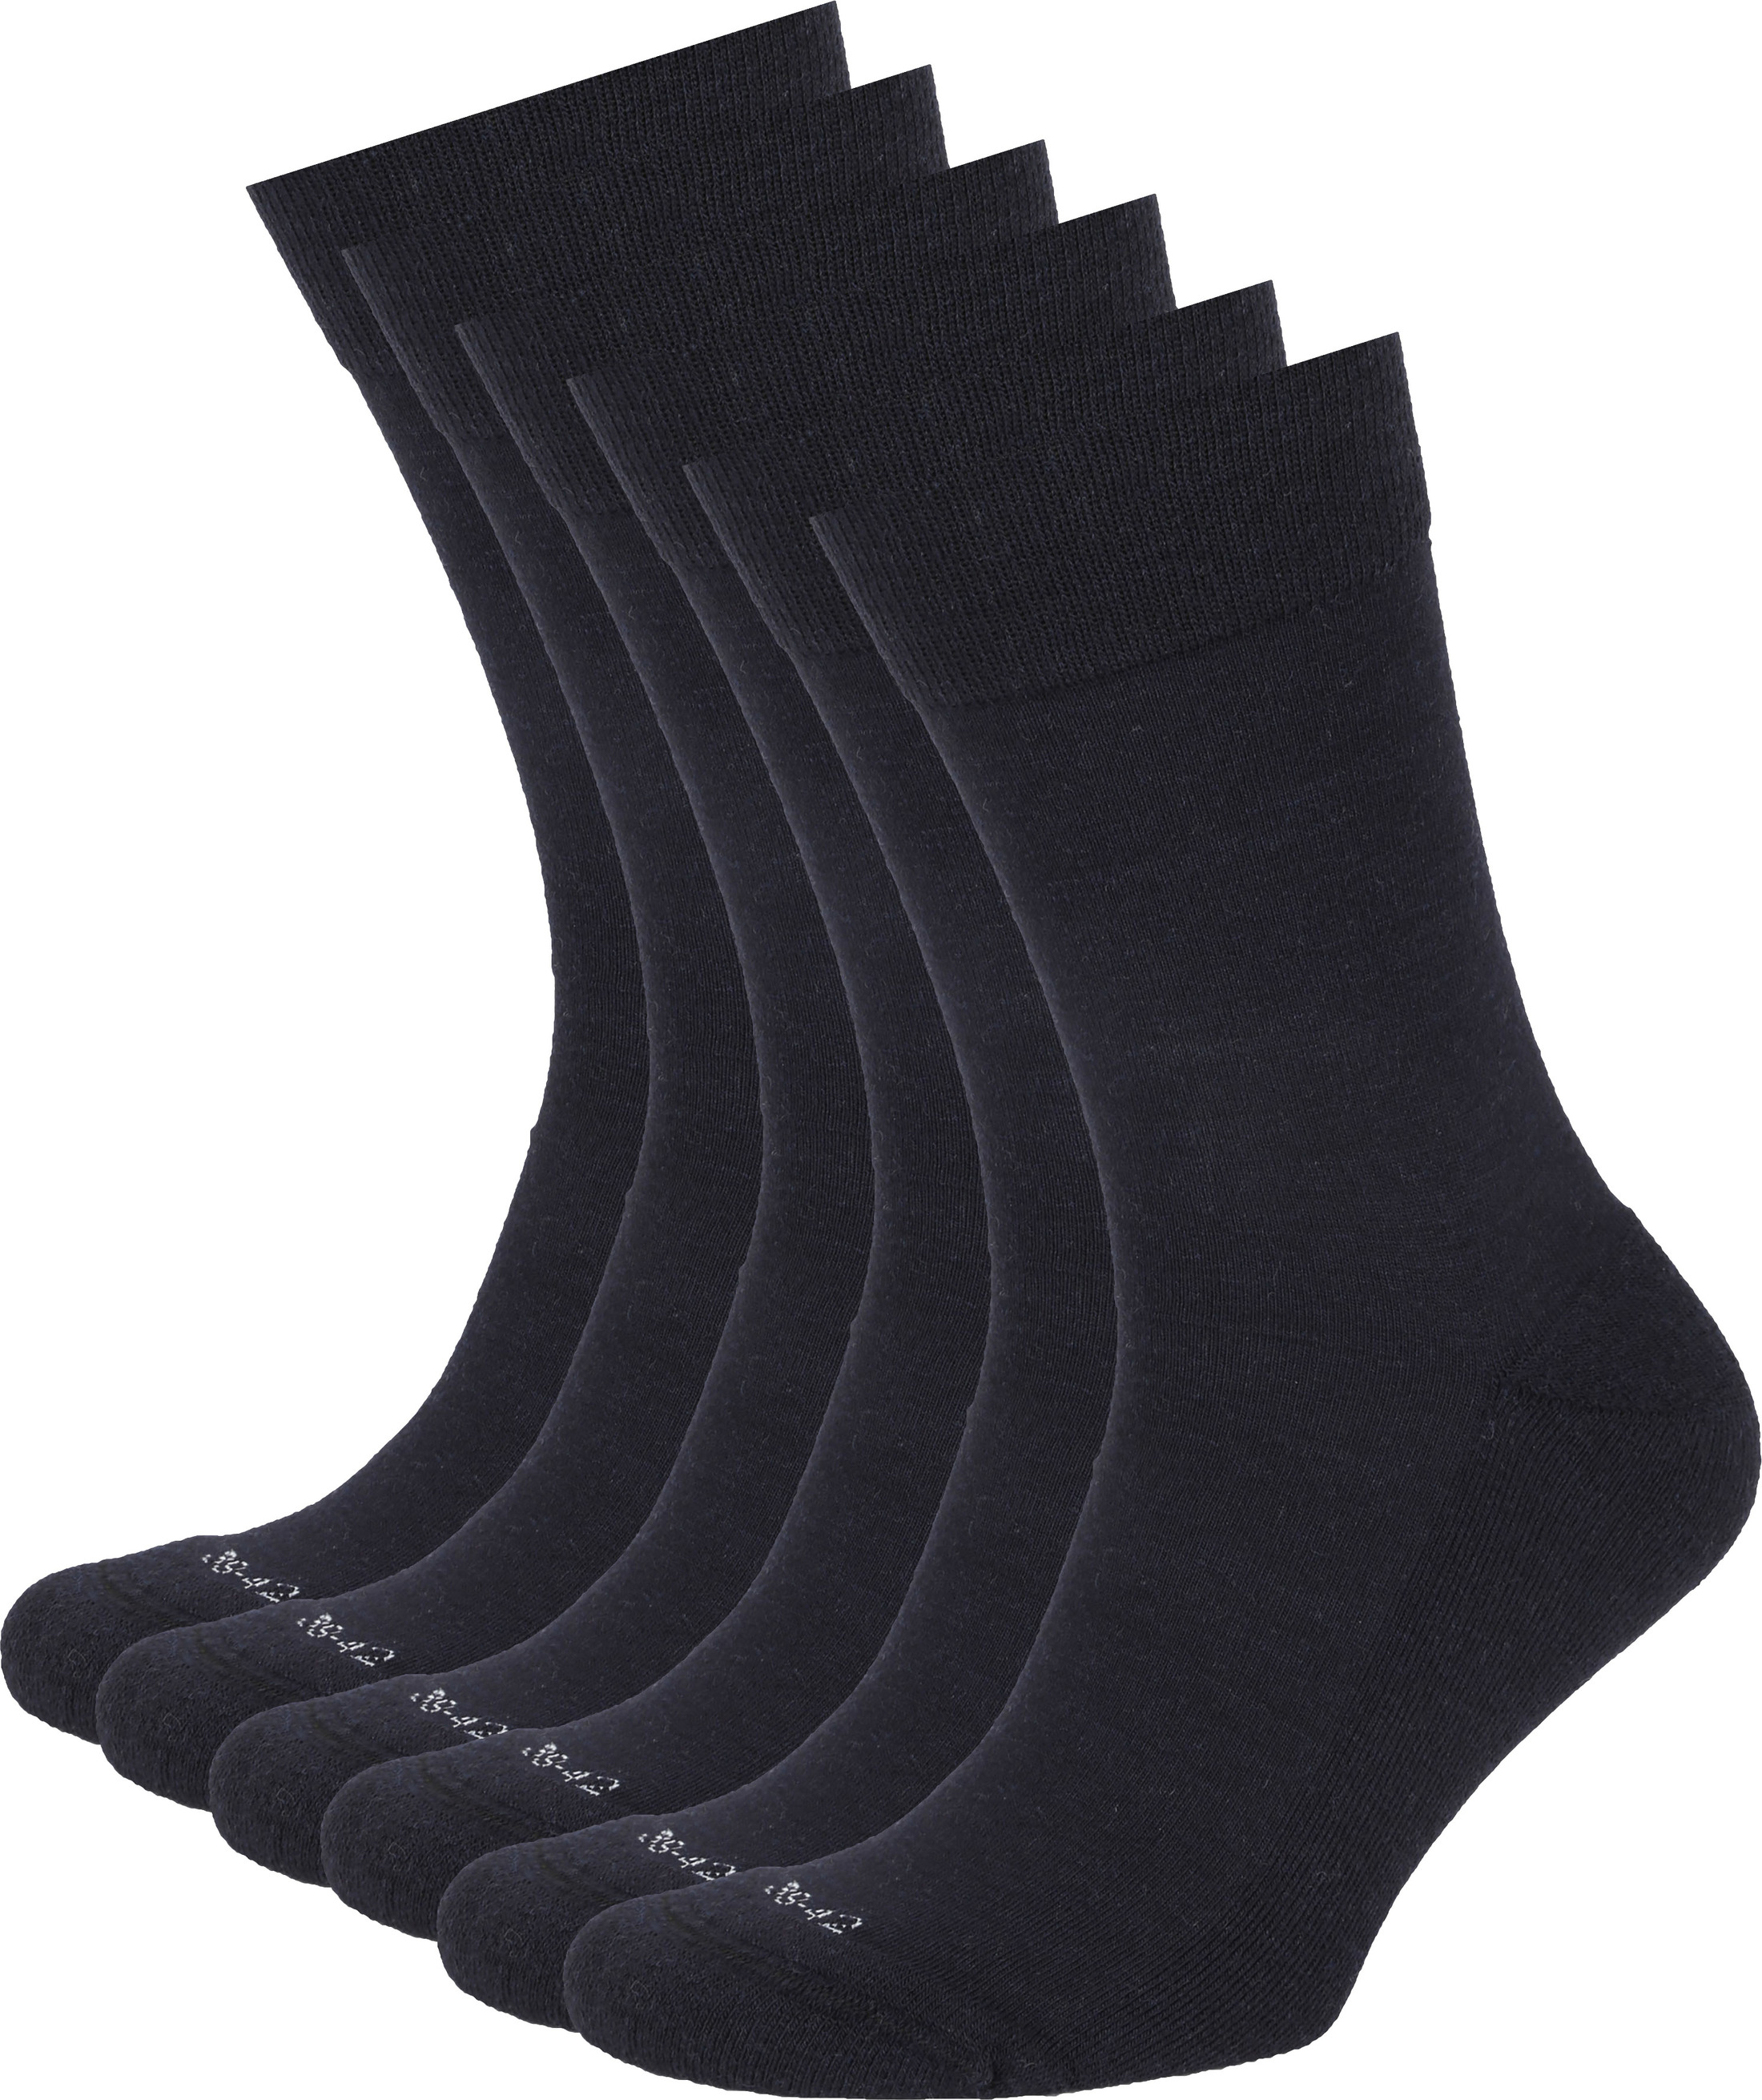 Suitable Merino Socks Navy 6-Pack